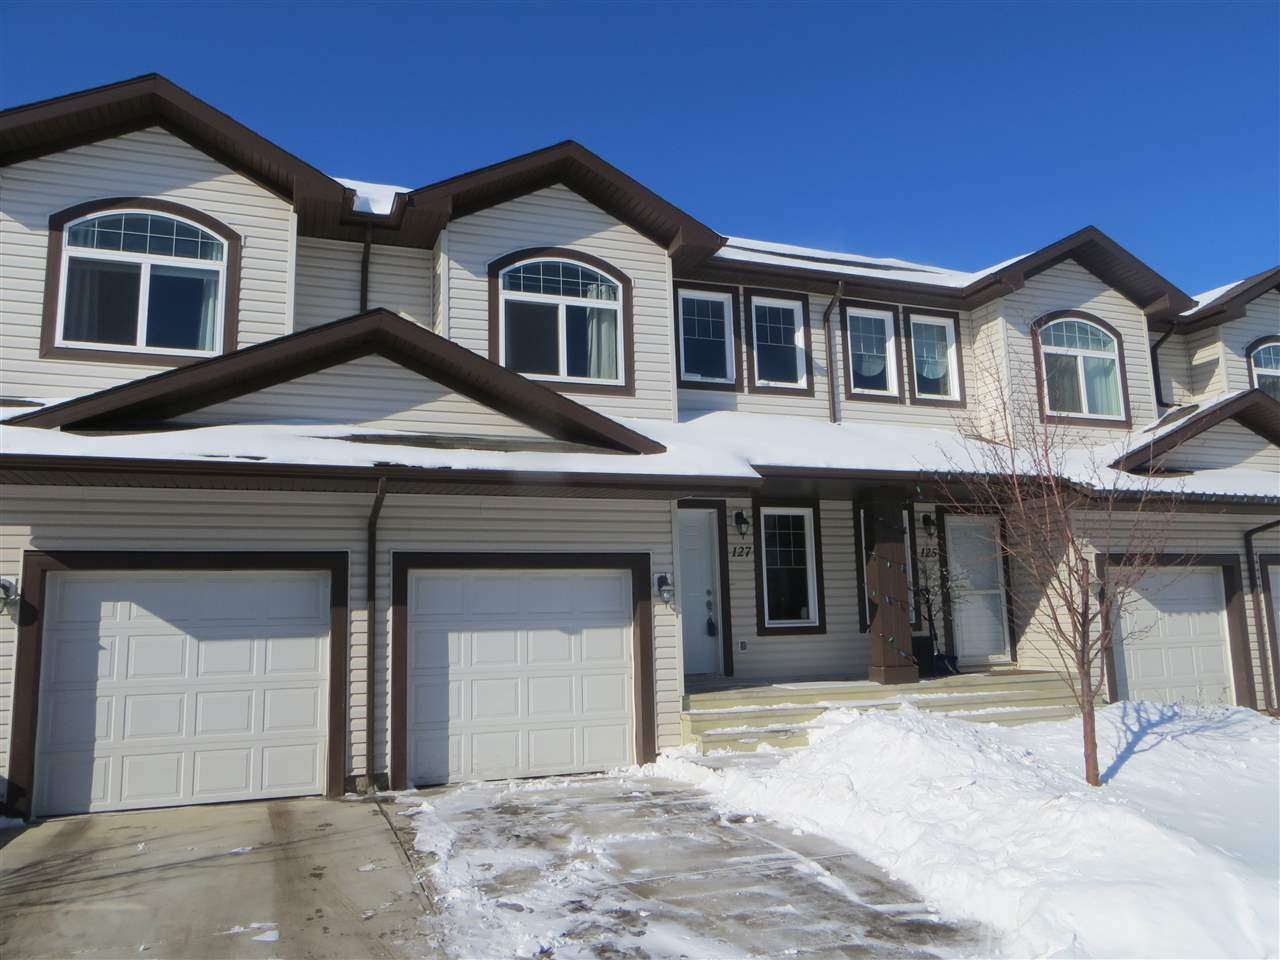 Assume the mortgage with 2.44% interest rate, $15,500 down payment, save on CMHC & legal fees! Townhome w/ attached garage! This 3 bedroom townhome comes with an affordable condo fee and unlike other complexes it has a full basement!  Terrific floorplan and Attached Garage (10x19) plus extra parking in front of the garage.   Stainless steel appliances, granite countertops, laminate floors and a landscaped yard with deck.  The open layout of the main floor is stunning and the modern kitchen features a large island with a built-in sink, an abundance of cupboards and counter space and a spacious dining area. The additional walk-in pantry adjacent to the kitchen is perfect for keeping your life organized. The kitchen moves seamlessly into the central living room, complete with a cozy corner fireplace and easy access to your west facing back deck with privacy screen. The bedrooms upstairs are generous in size and offer ample closet space.  The master bedroom features a walk in closet and full bathroom ensuite.